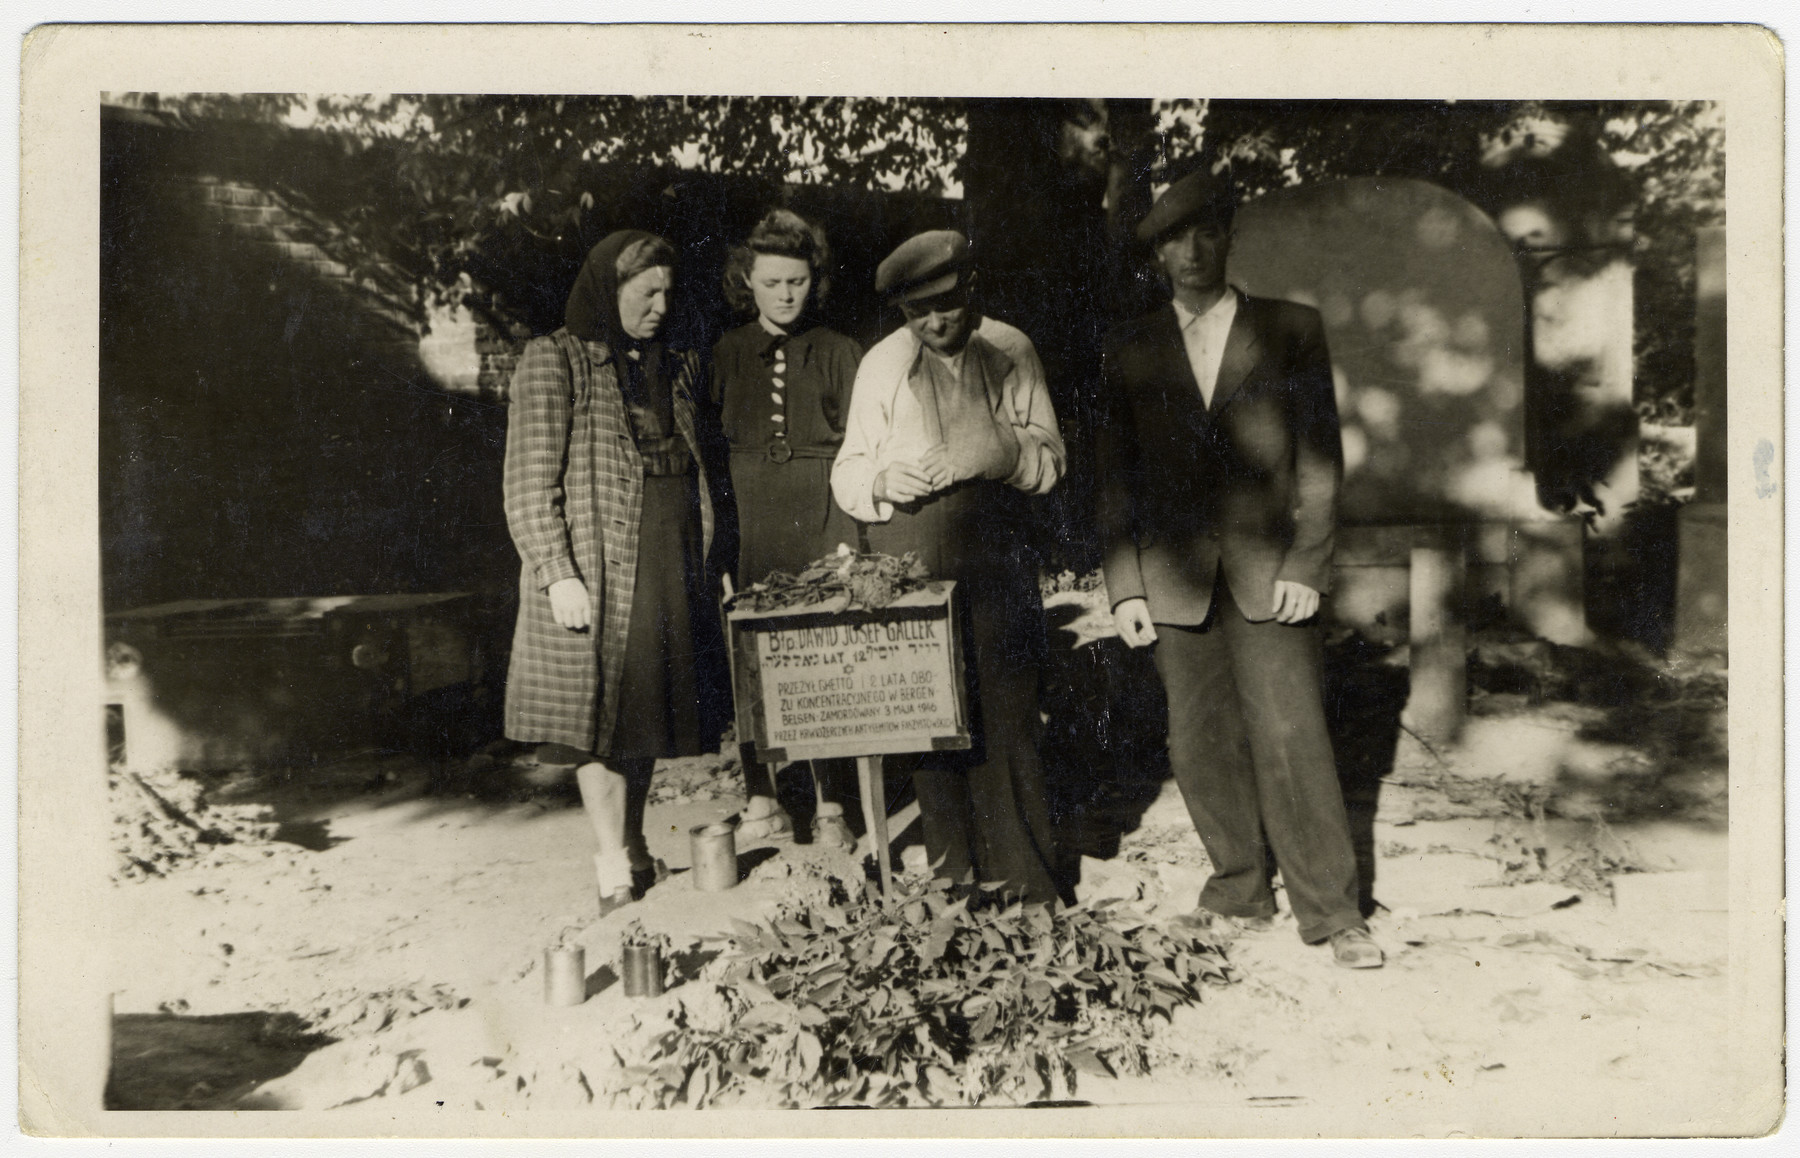 The Galler family stands by the grave of Jews killed in a postwar attack on members of the Zionist group Gordonia outside of Krakow.  Among those killed was Yosef Galler.  Pictured are Maria Galler (his mother), Renna Galler (his sister) and Izrael Galler (his father).  The man on the far right is unidentified.  The family survived Bergen-Belsen on Argentinian papers and were liberated on the train in Fallersleben.